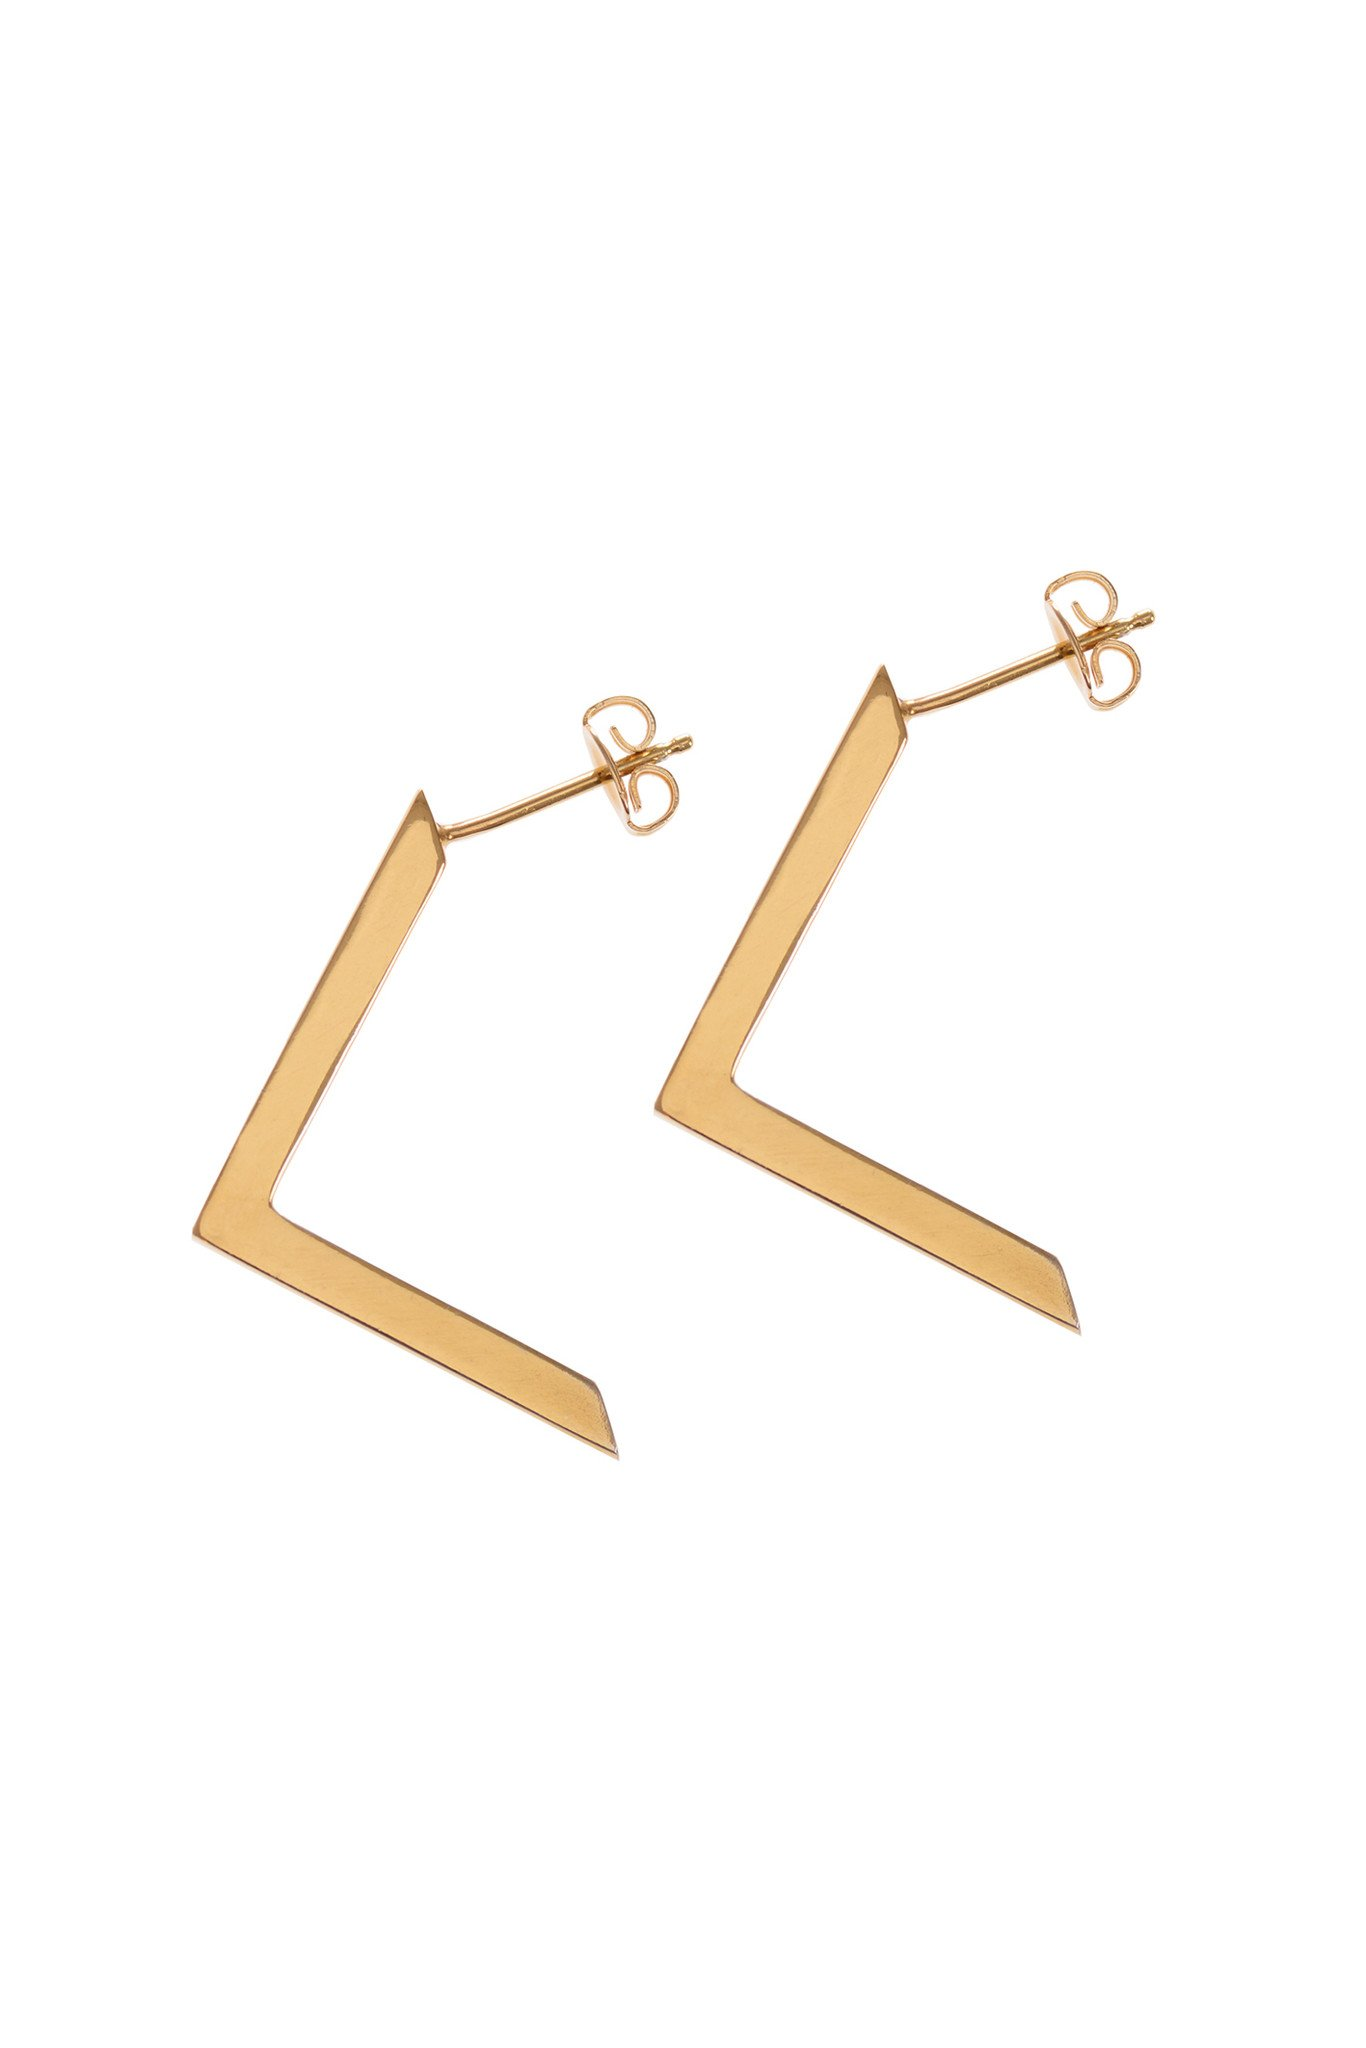 Boomerang, Gold Earrings by Sally Lane Jewellery on curated-crowd.com